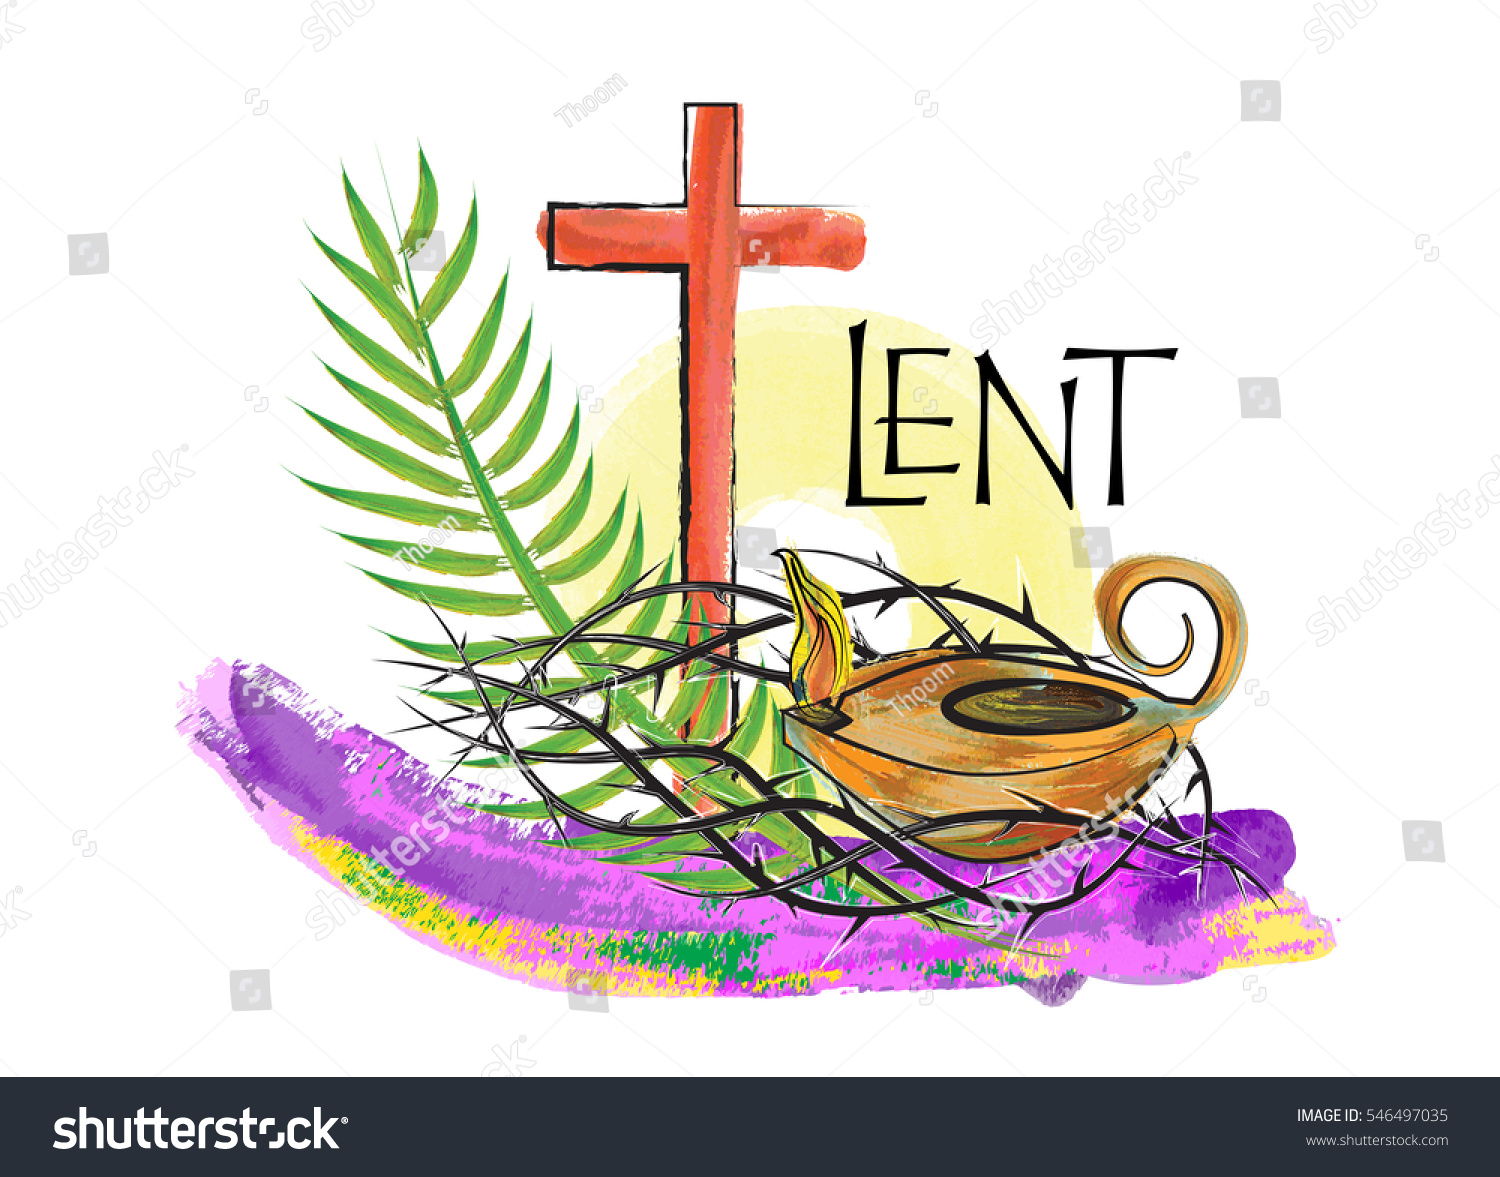 Lent season christian religious illustration abstract stock lent season christian religious illustration abstract artistic watercolor style design with crown of thorns biocorpaavc